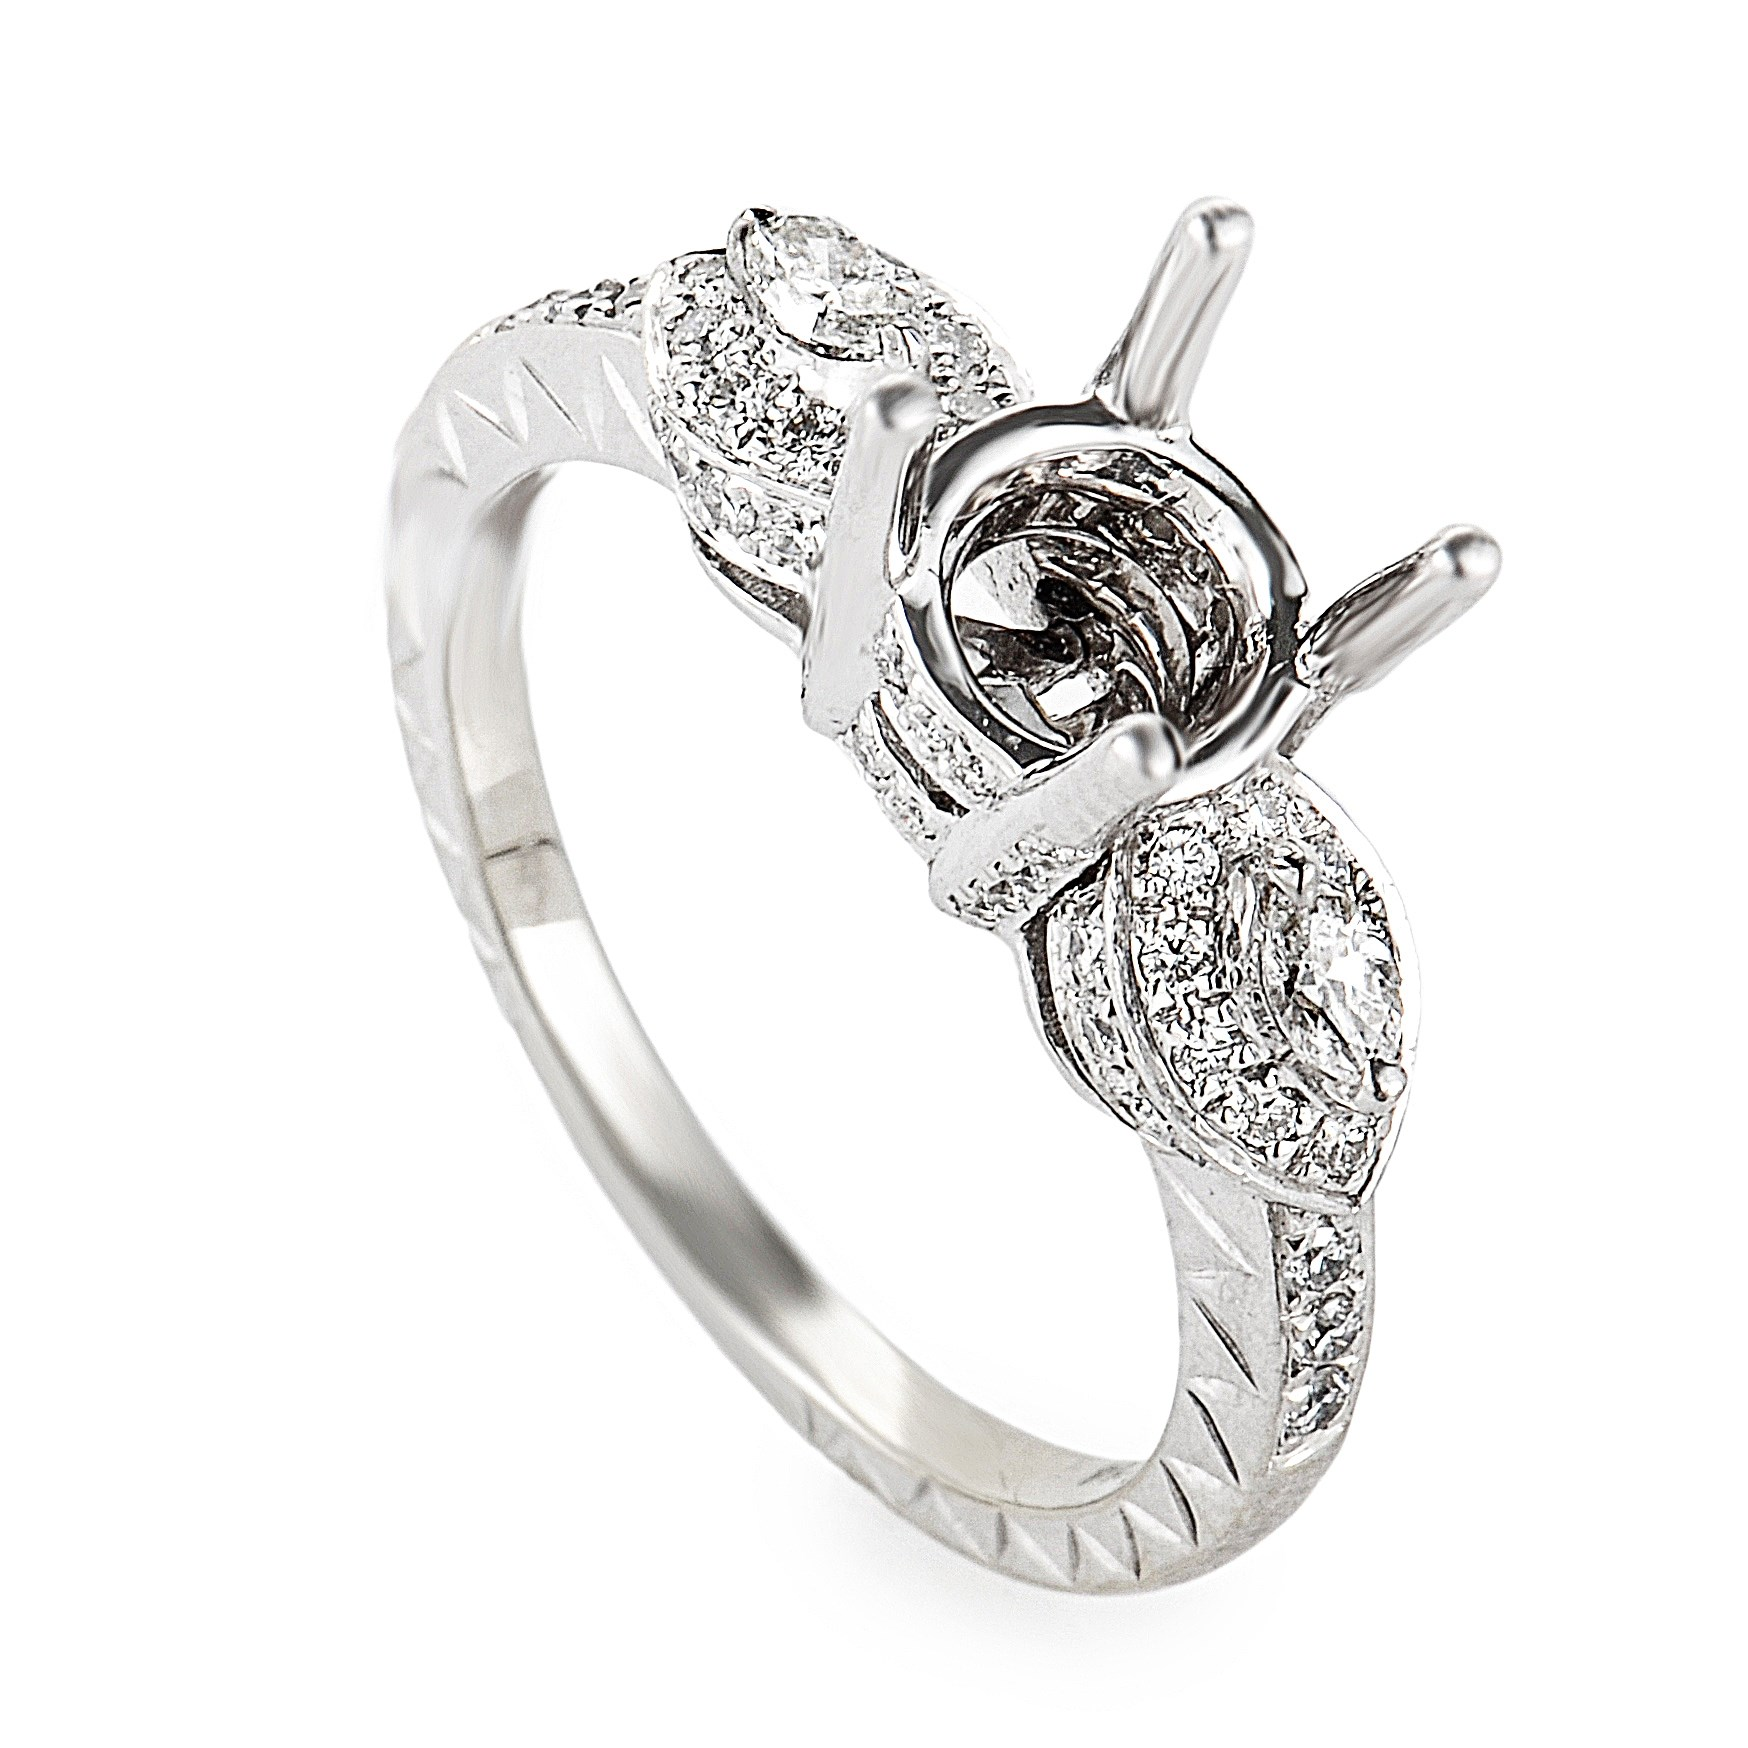 14K White Gold Diamond Mounting Ring NAK27-062813